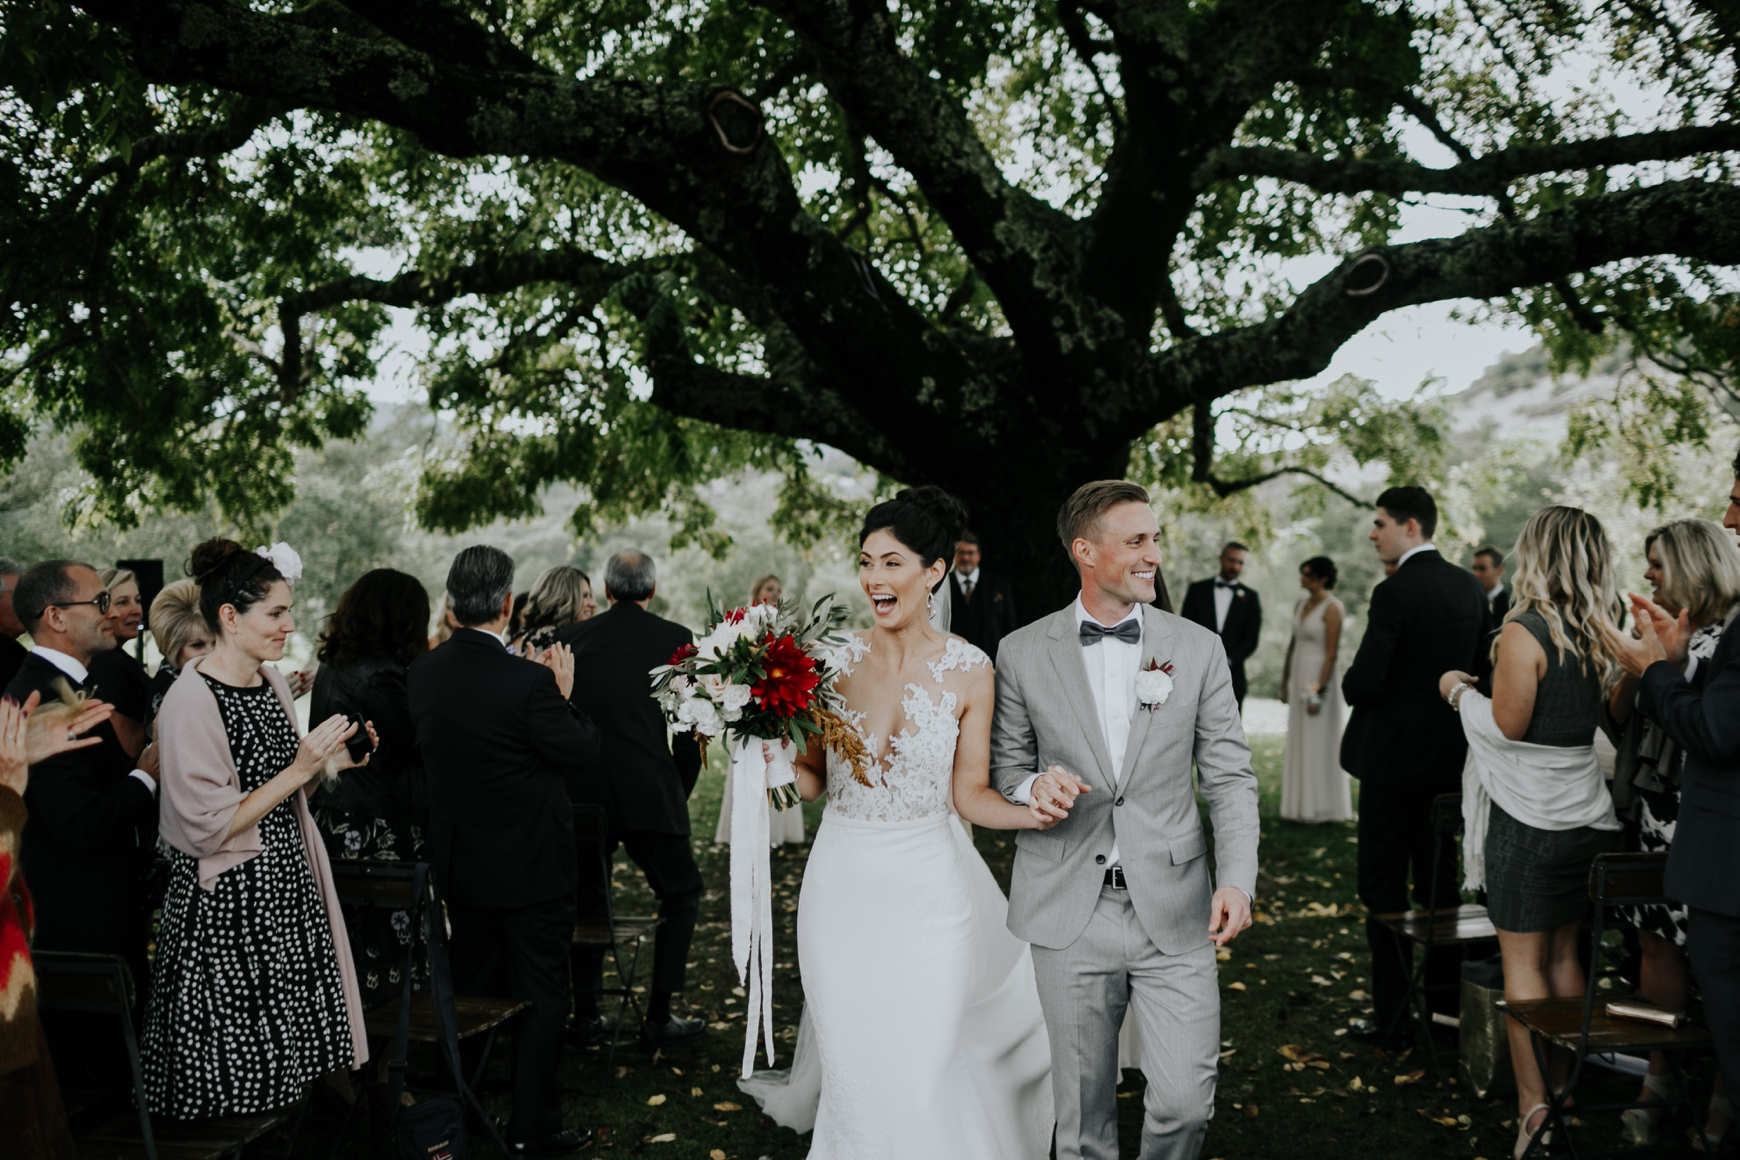 SSS Ranch Wedding Chiara & Jacques Emily Magers Photography-730.jpg